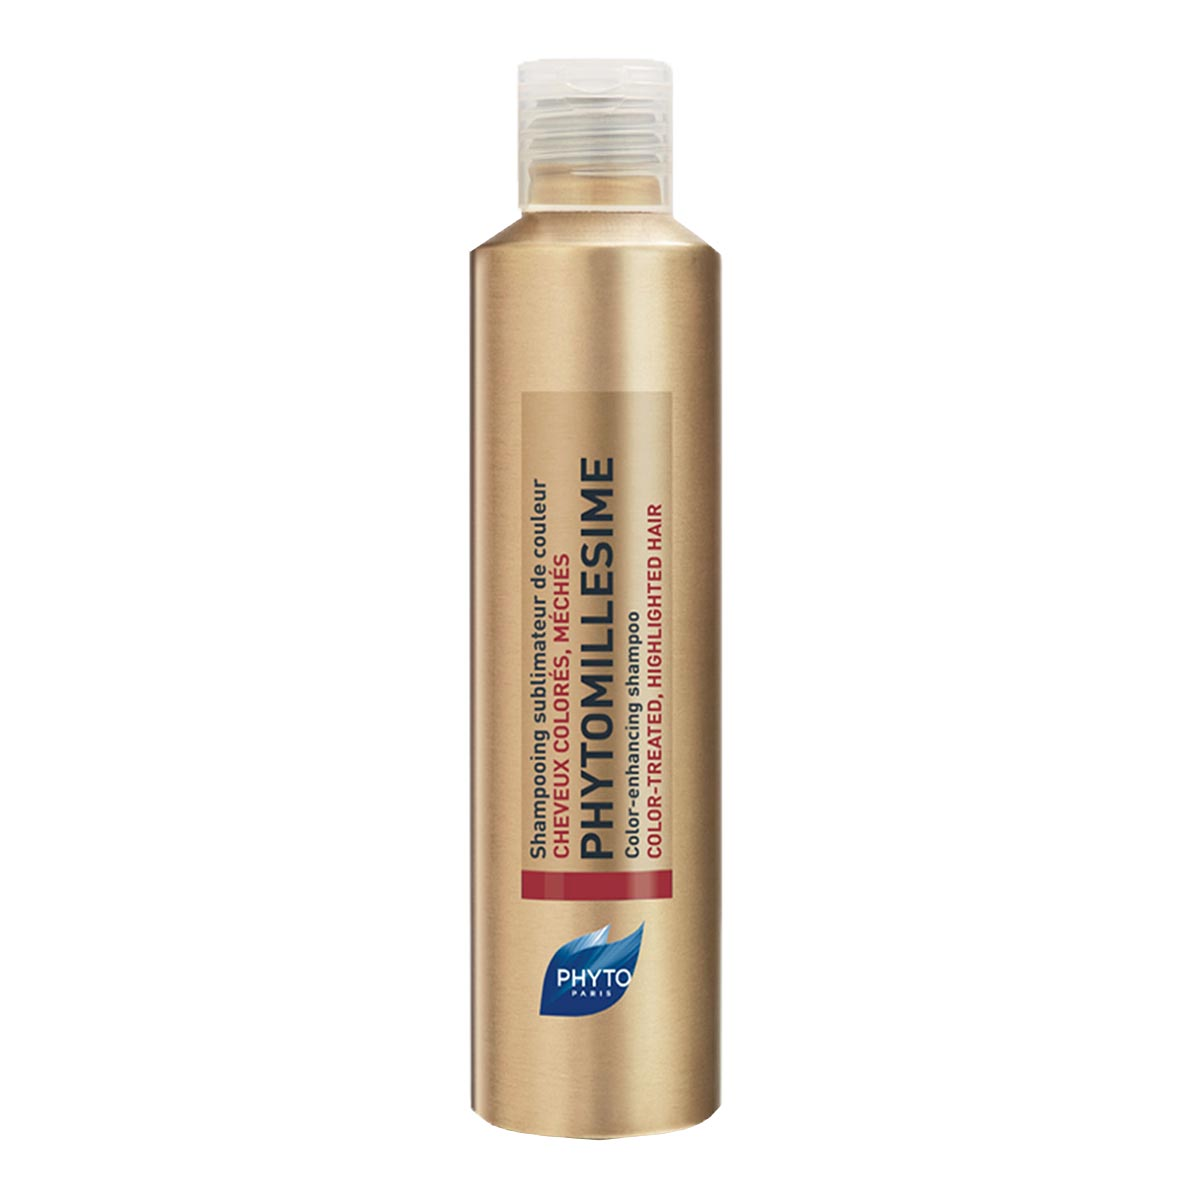 Phytomillesime - Shampooing Sublimateur Couleur - Phyto 200ml